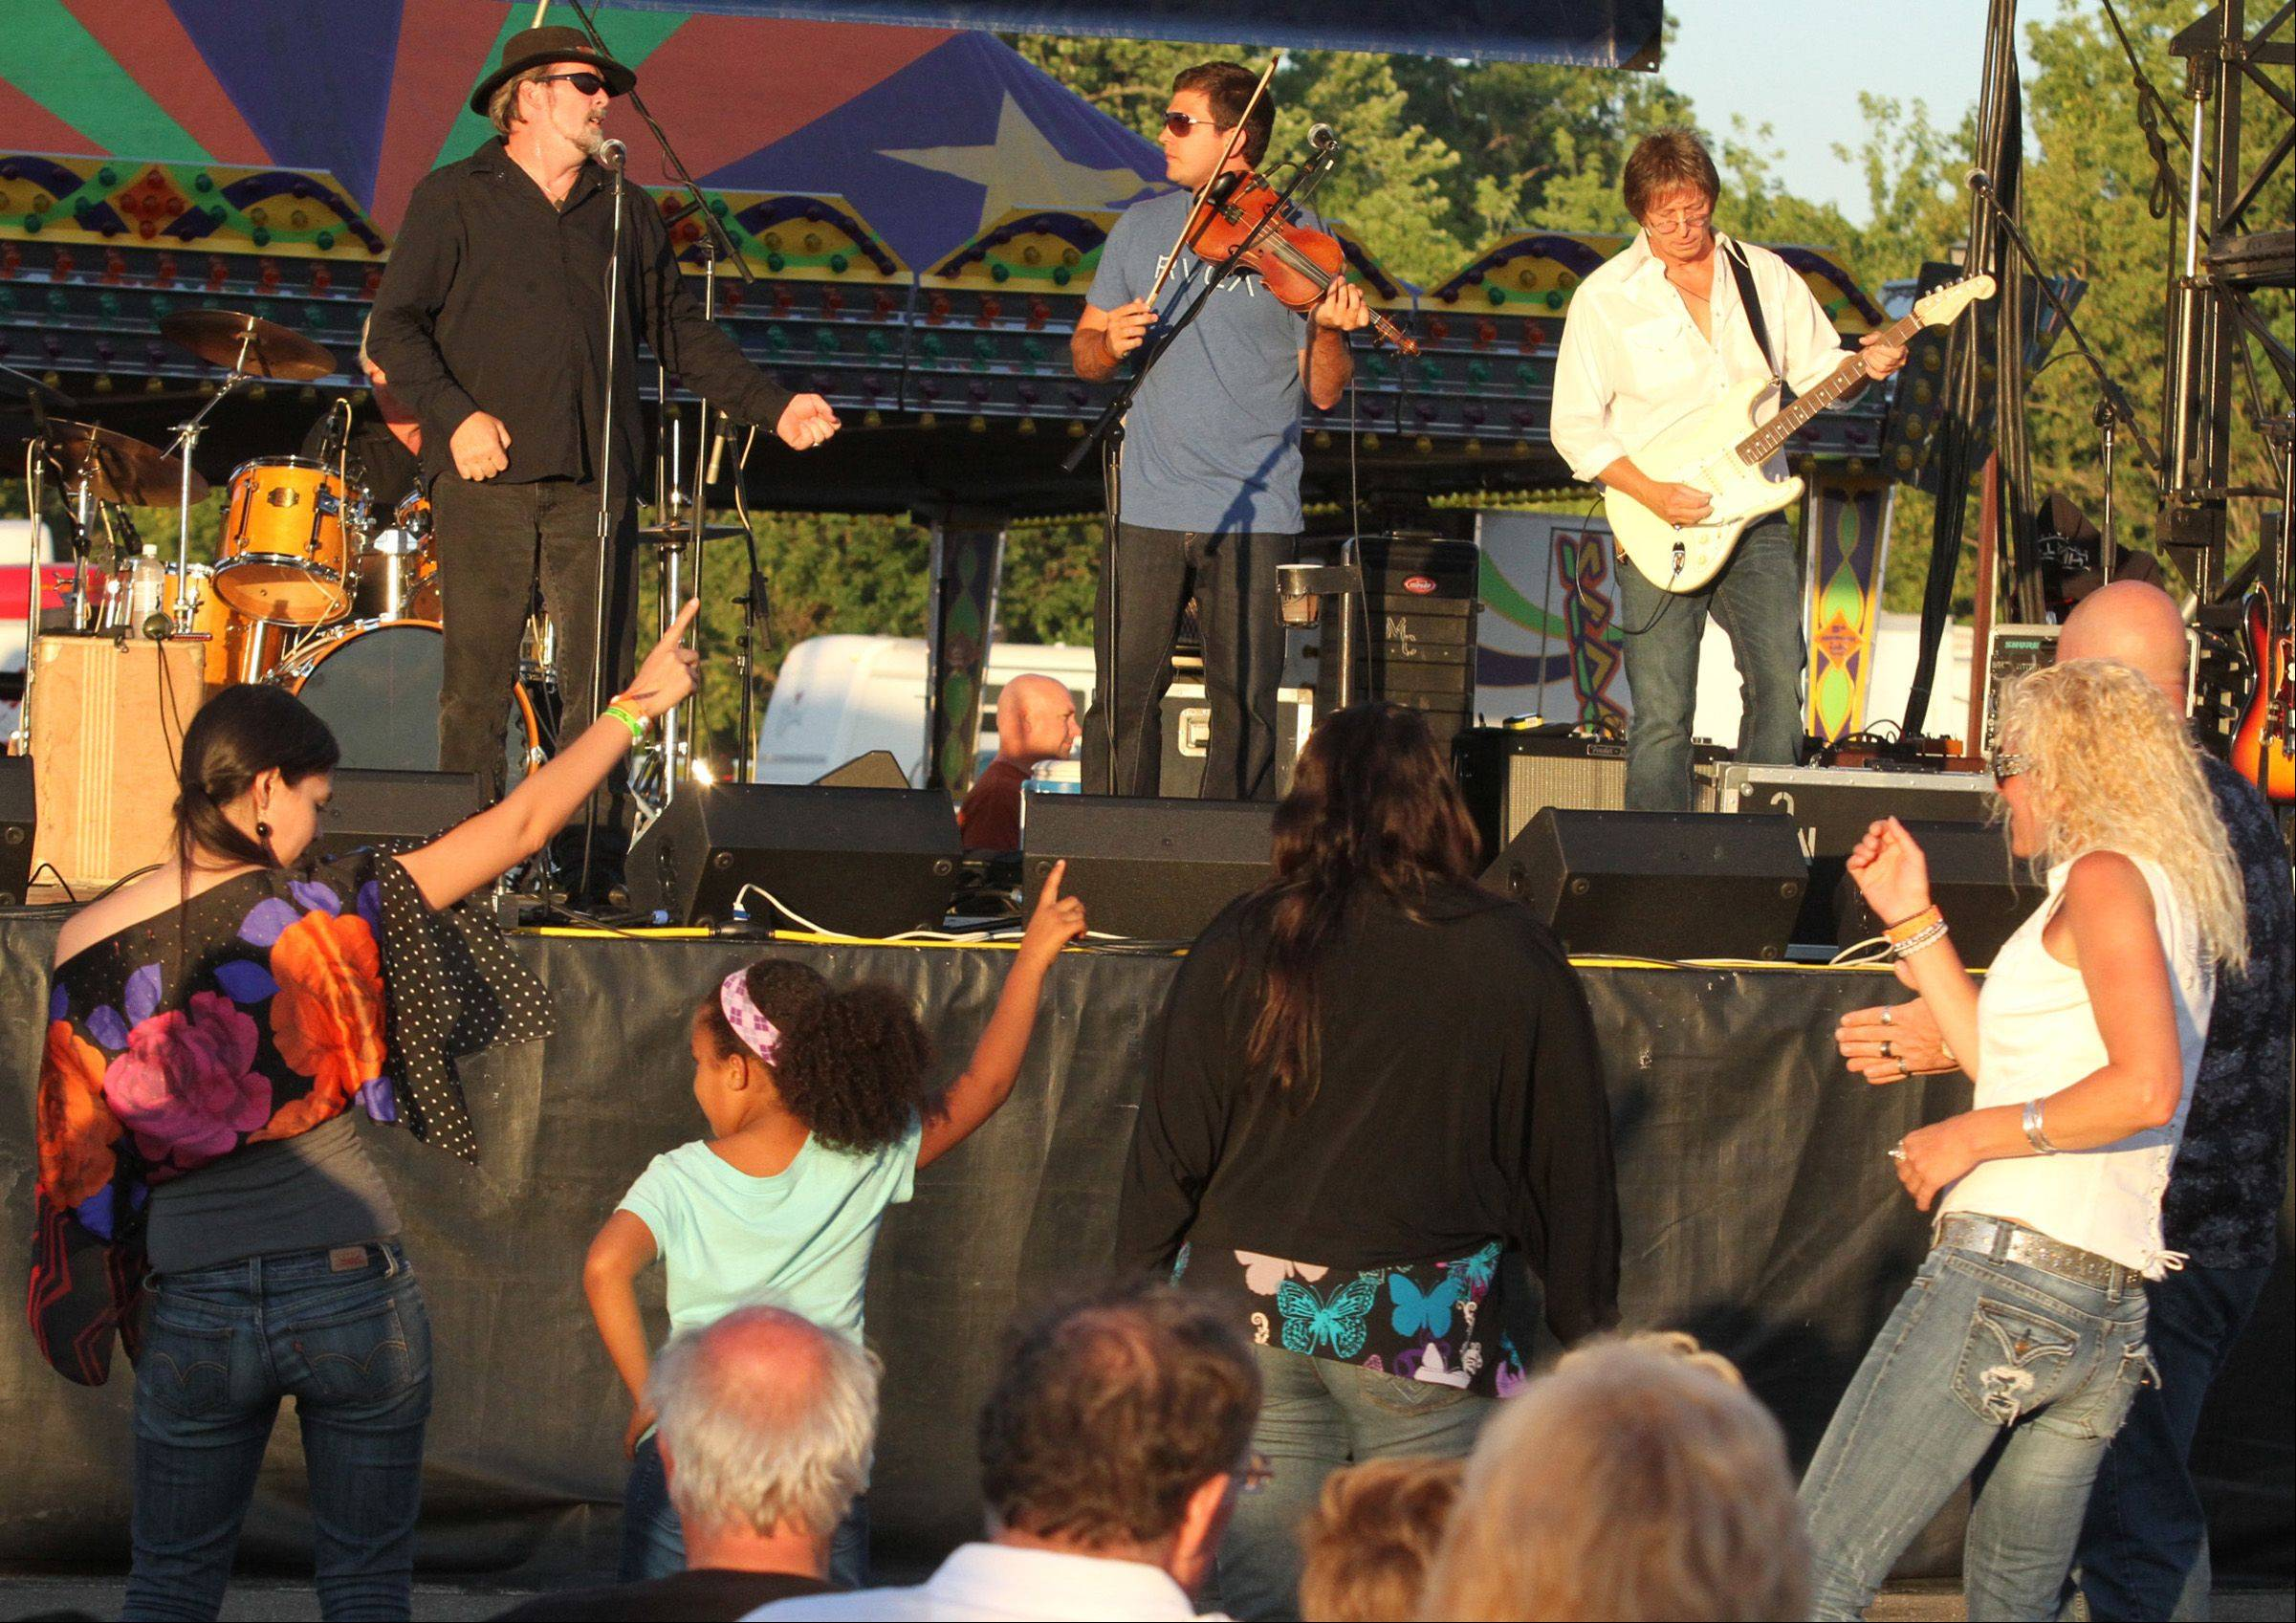 Kevin Purcell & The Nightburners at played at last year's Wauconda Fest.